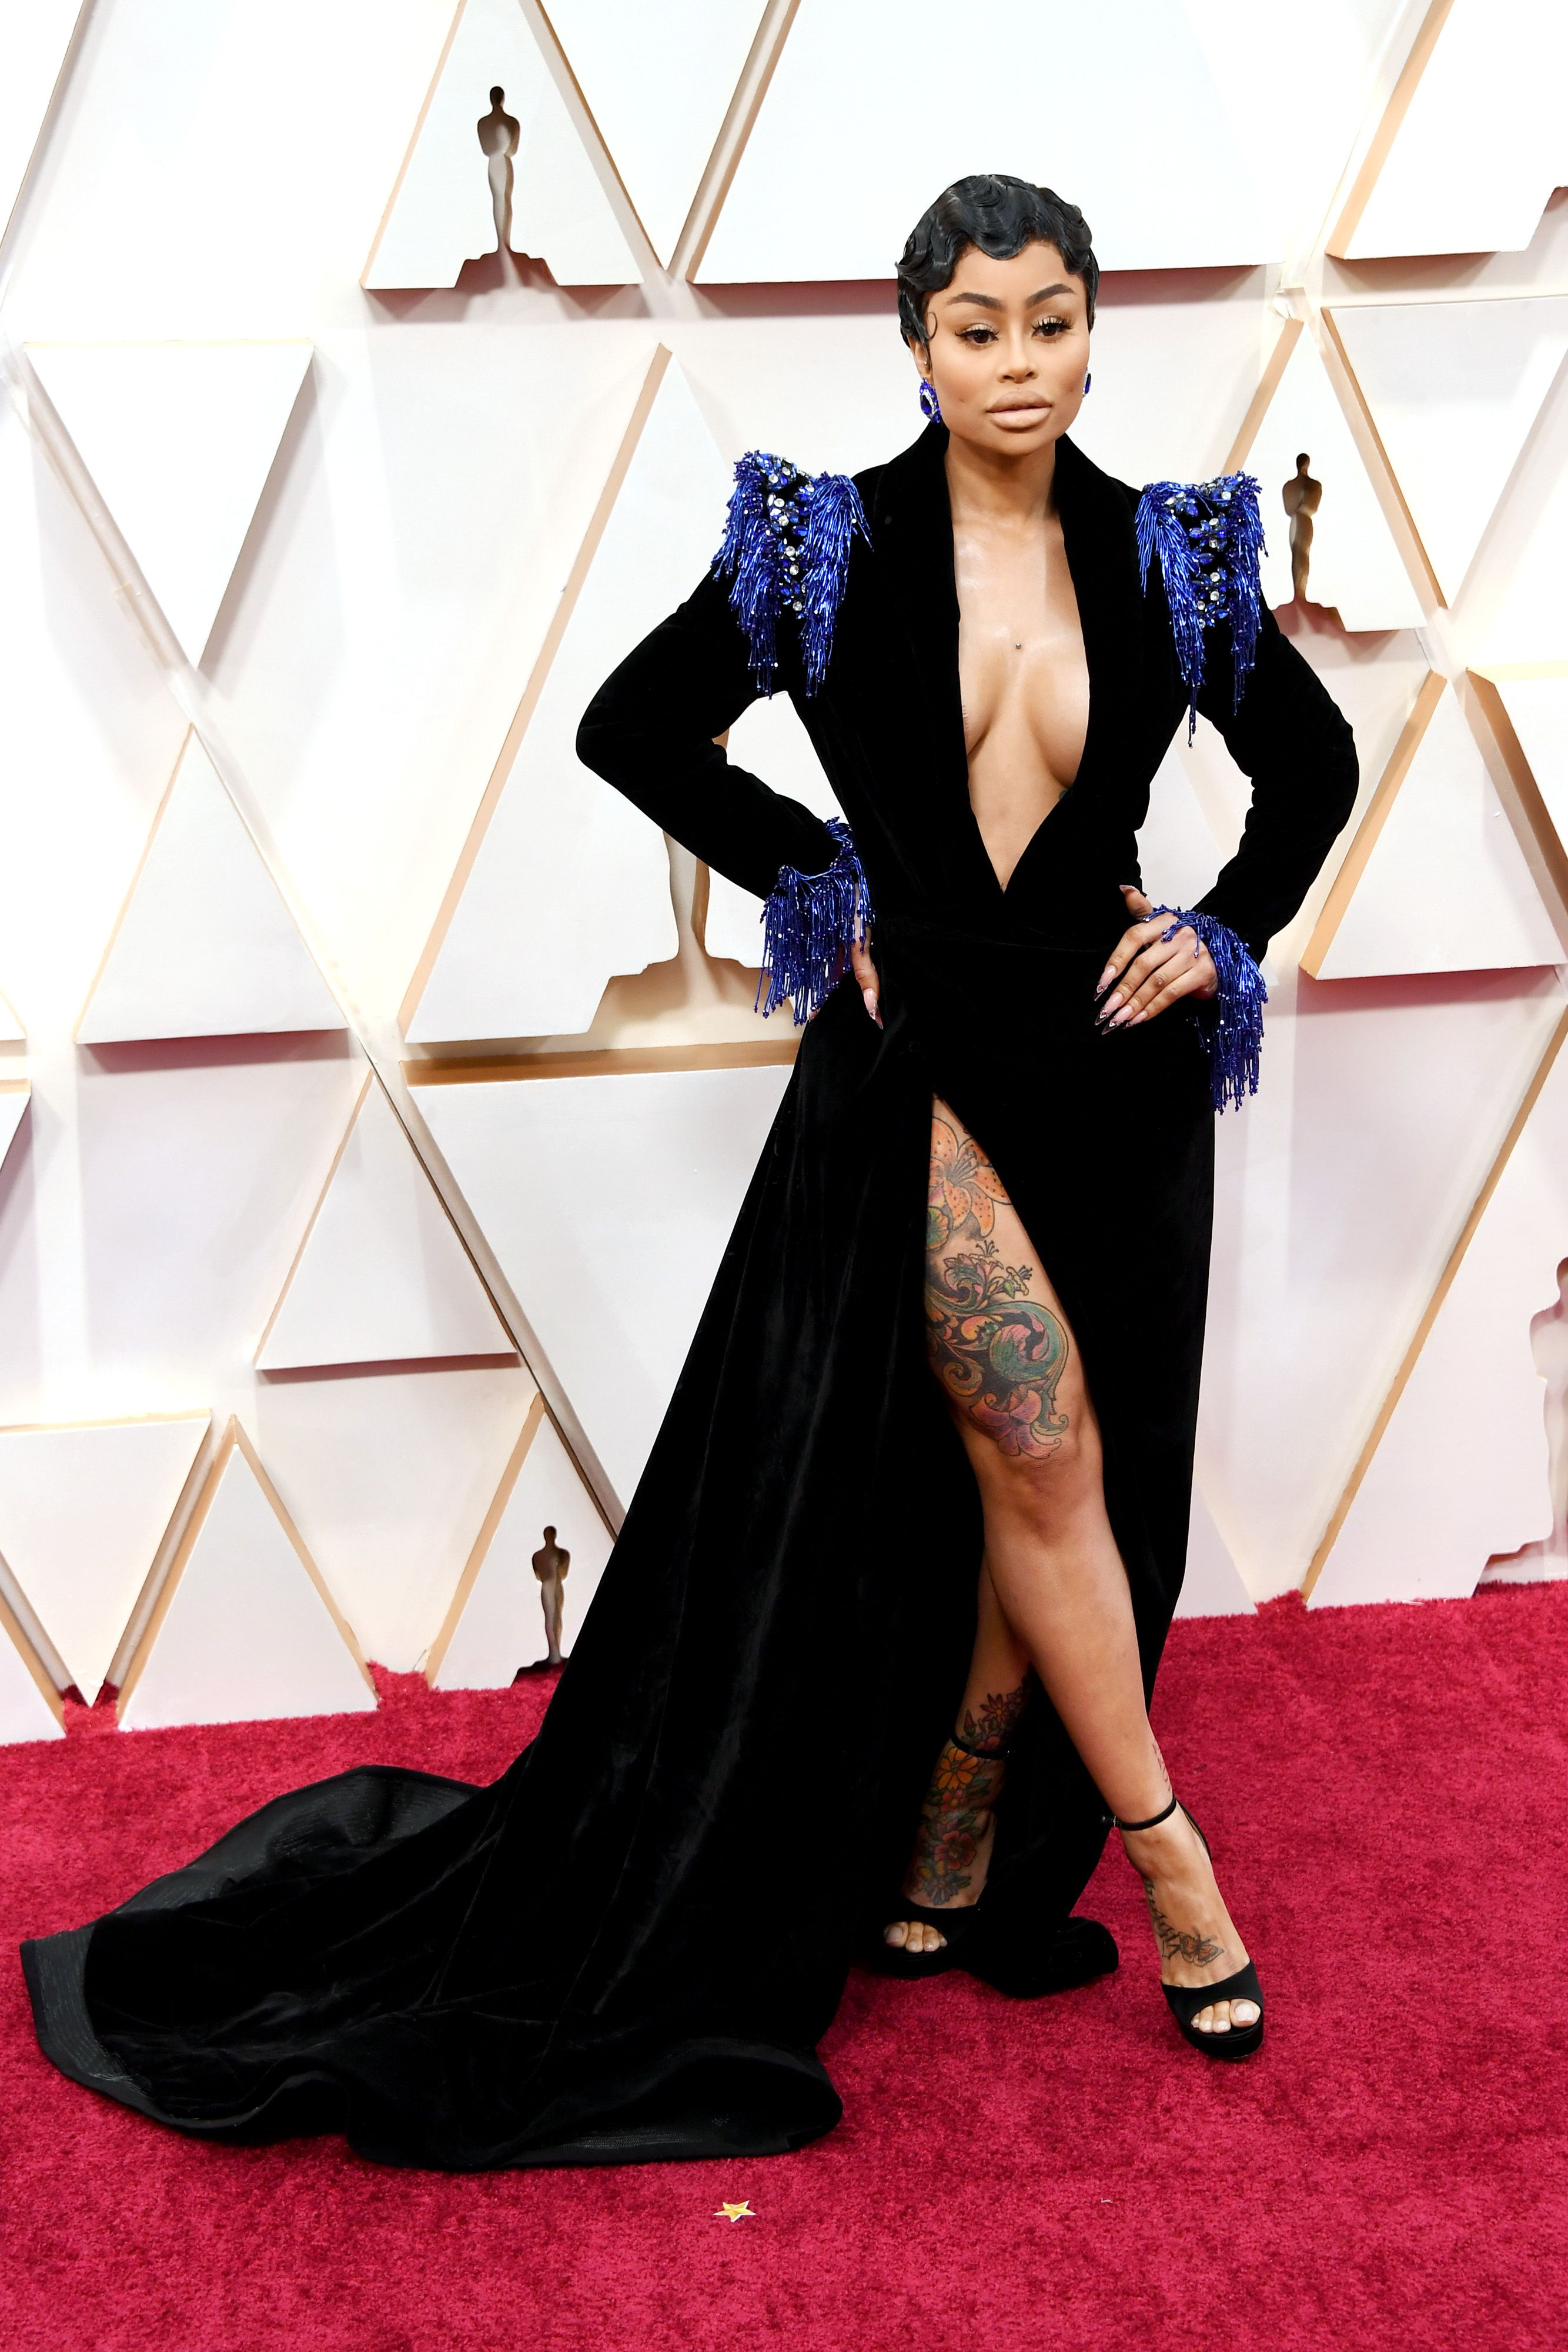 Blac Chyna on the red carpet at Oscars 2020